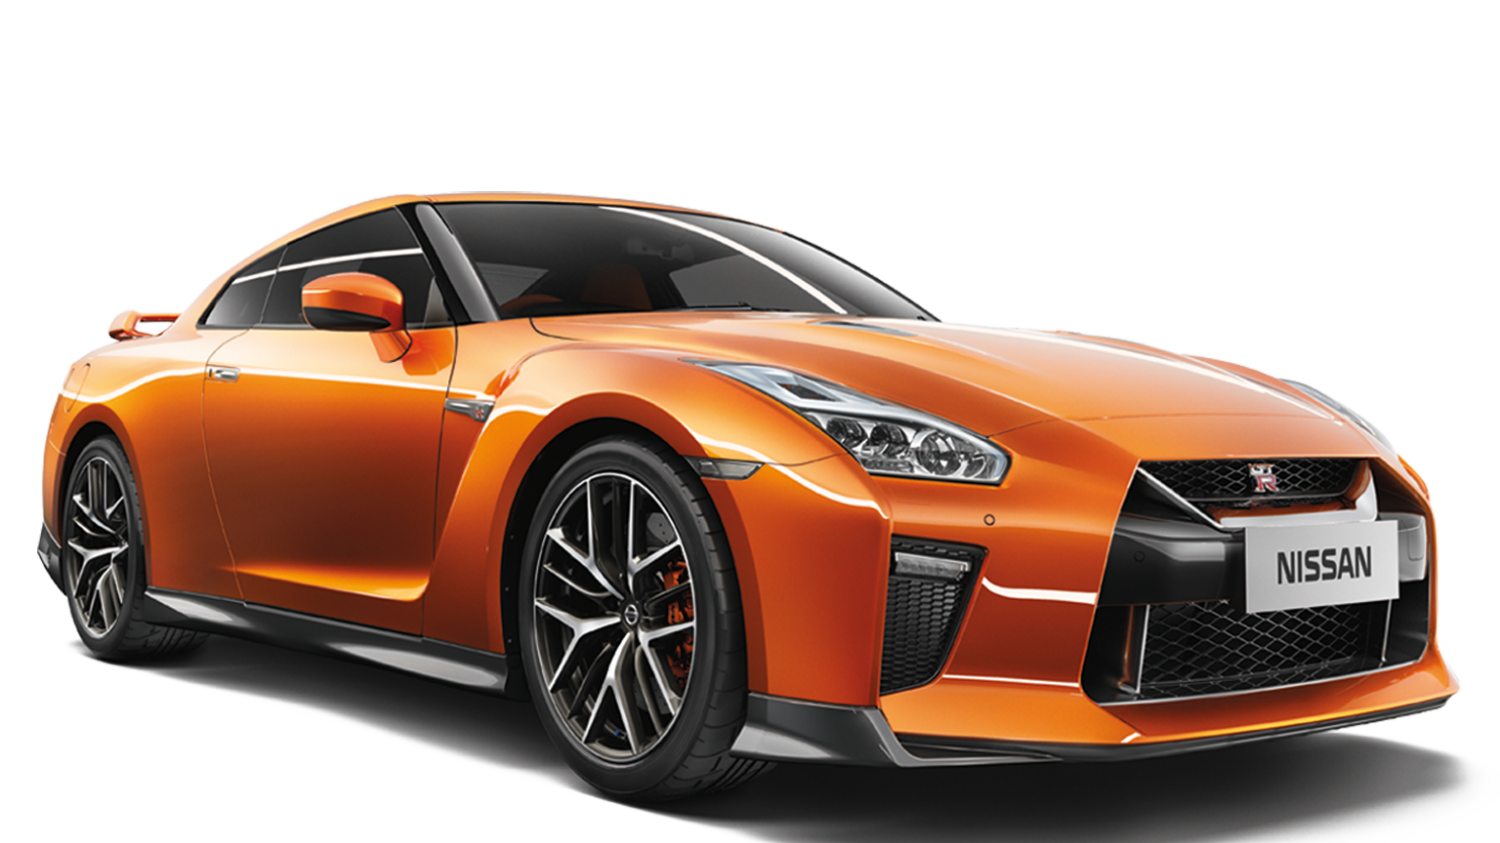 GTR supercar - legendary exhilaration awaits